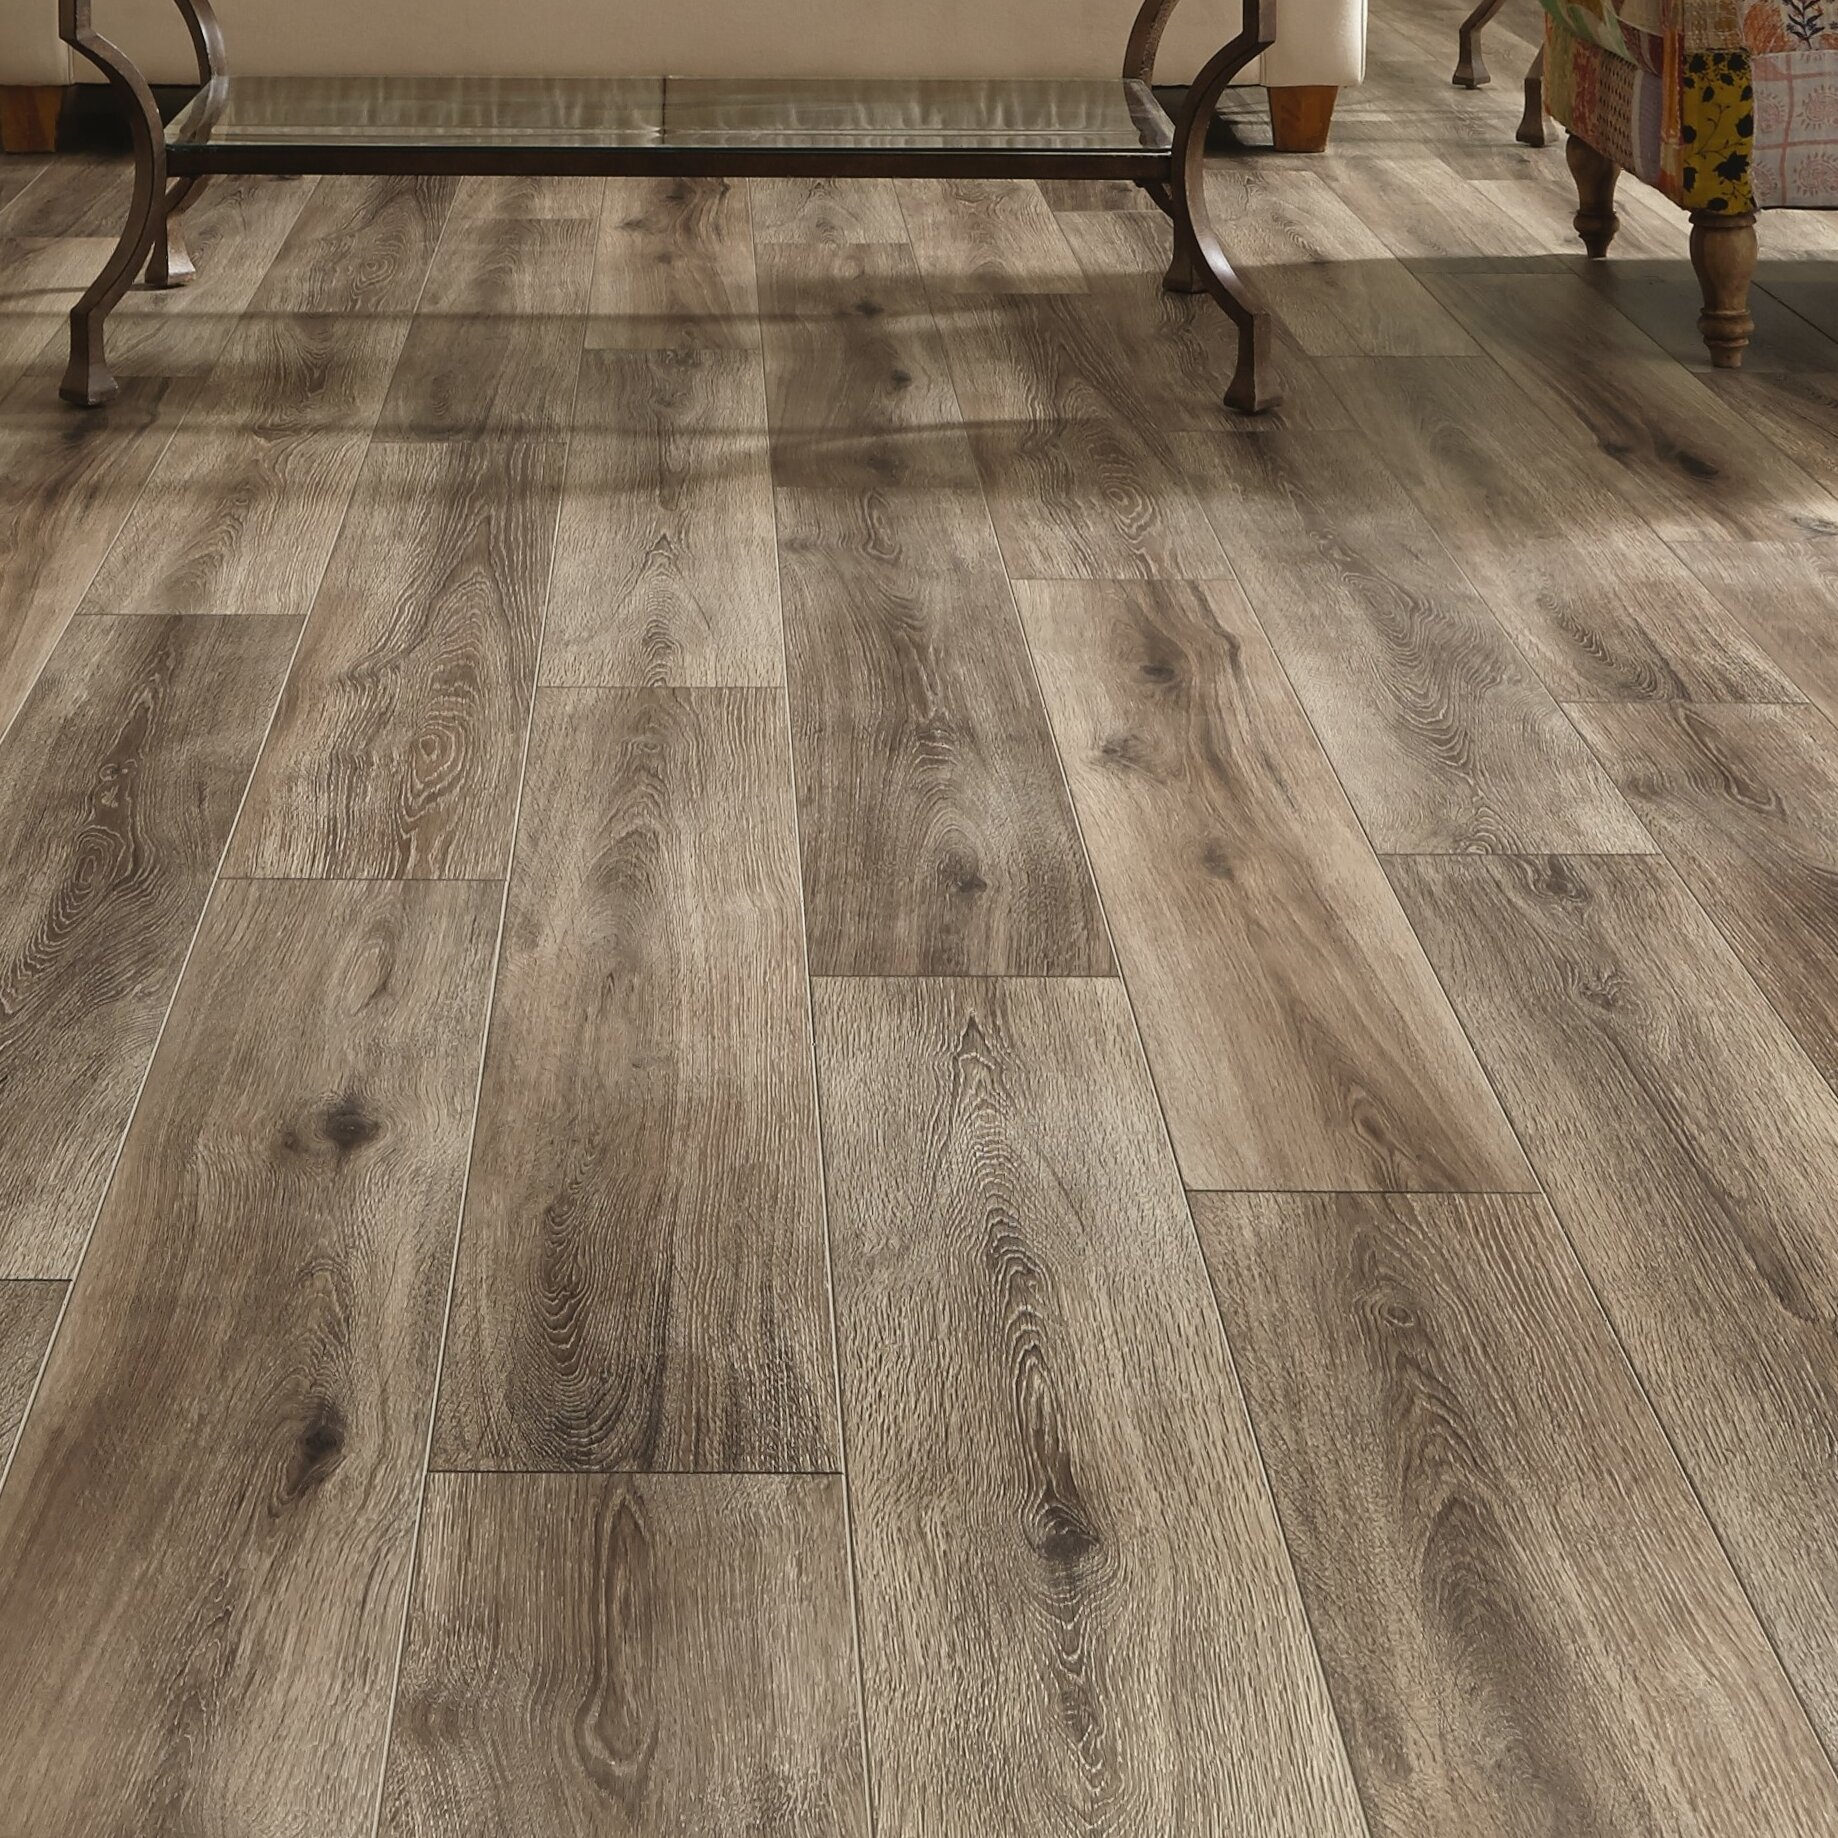 Mannington Restoration Wide Plank 8'' x 51'' x 12mm Laminate Flooring in Brushed Gray | Wayfair